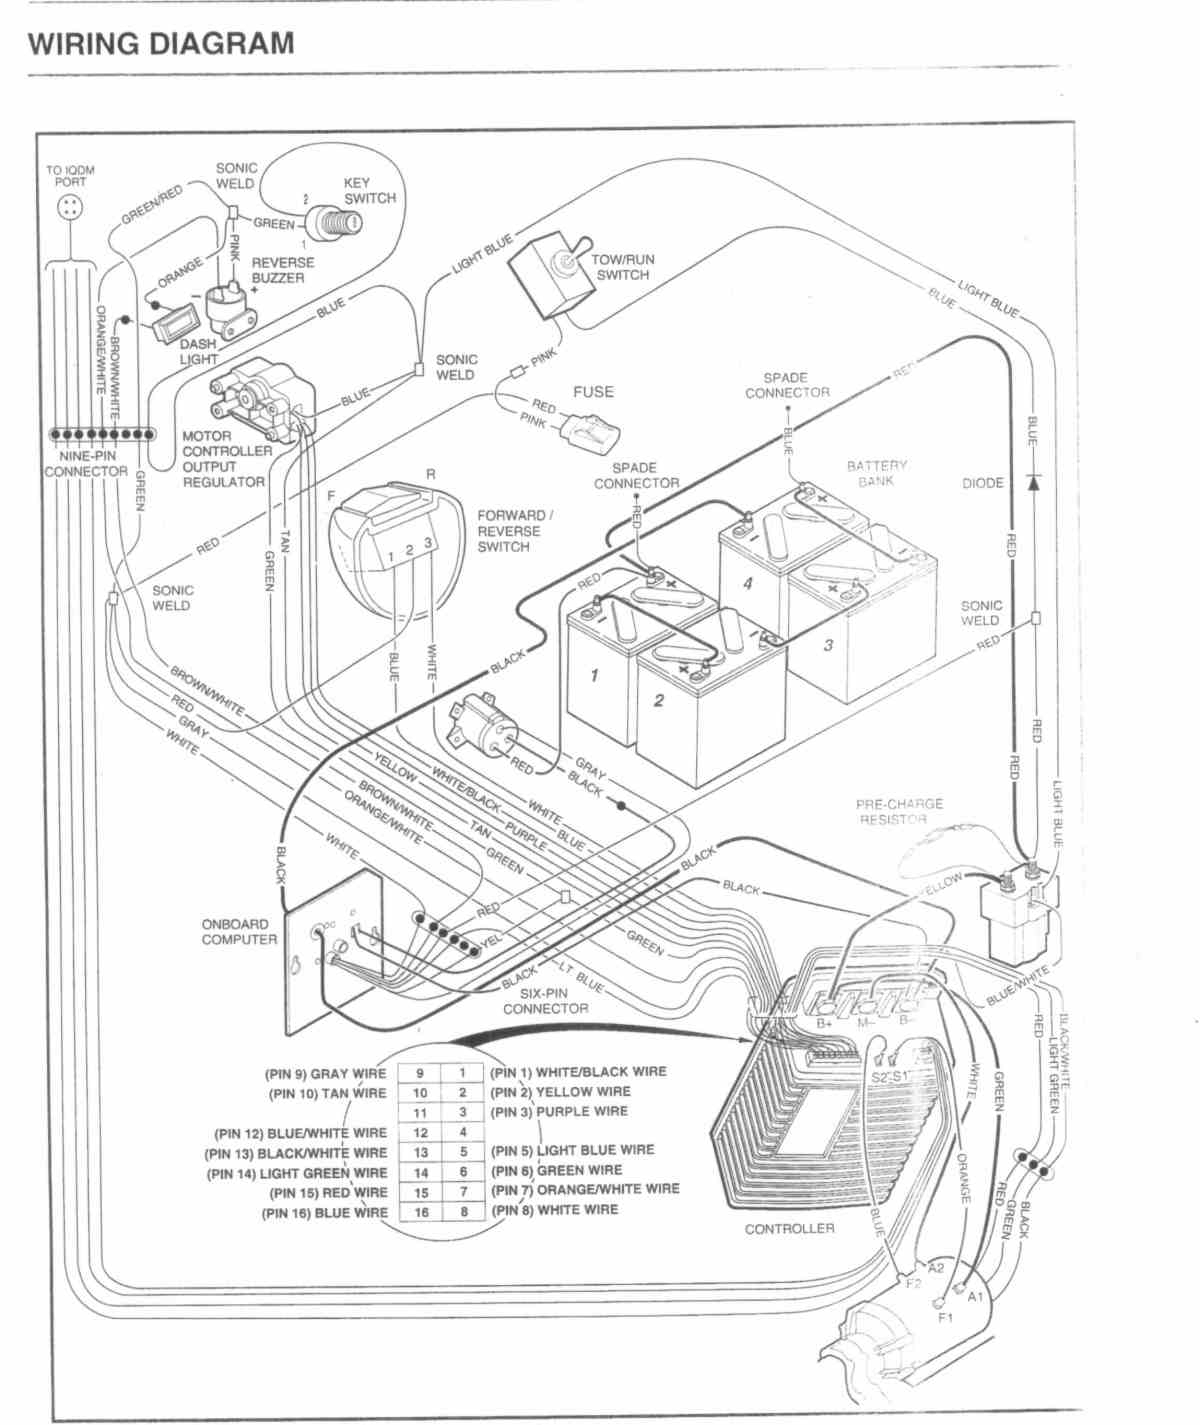 Light Switch Wiring Diagram For 1989 Club Car - wiring diagrams ...